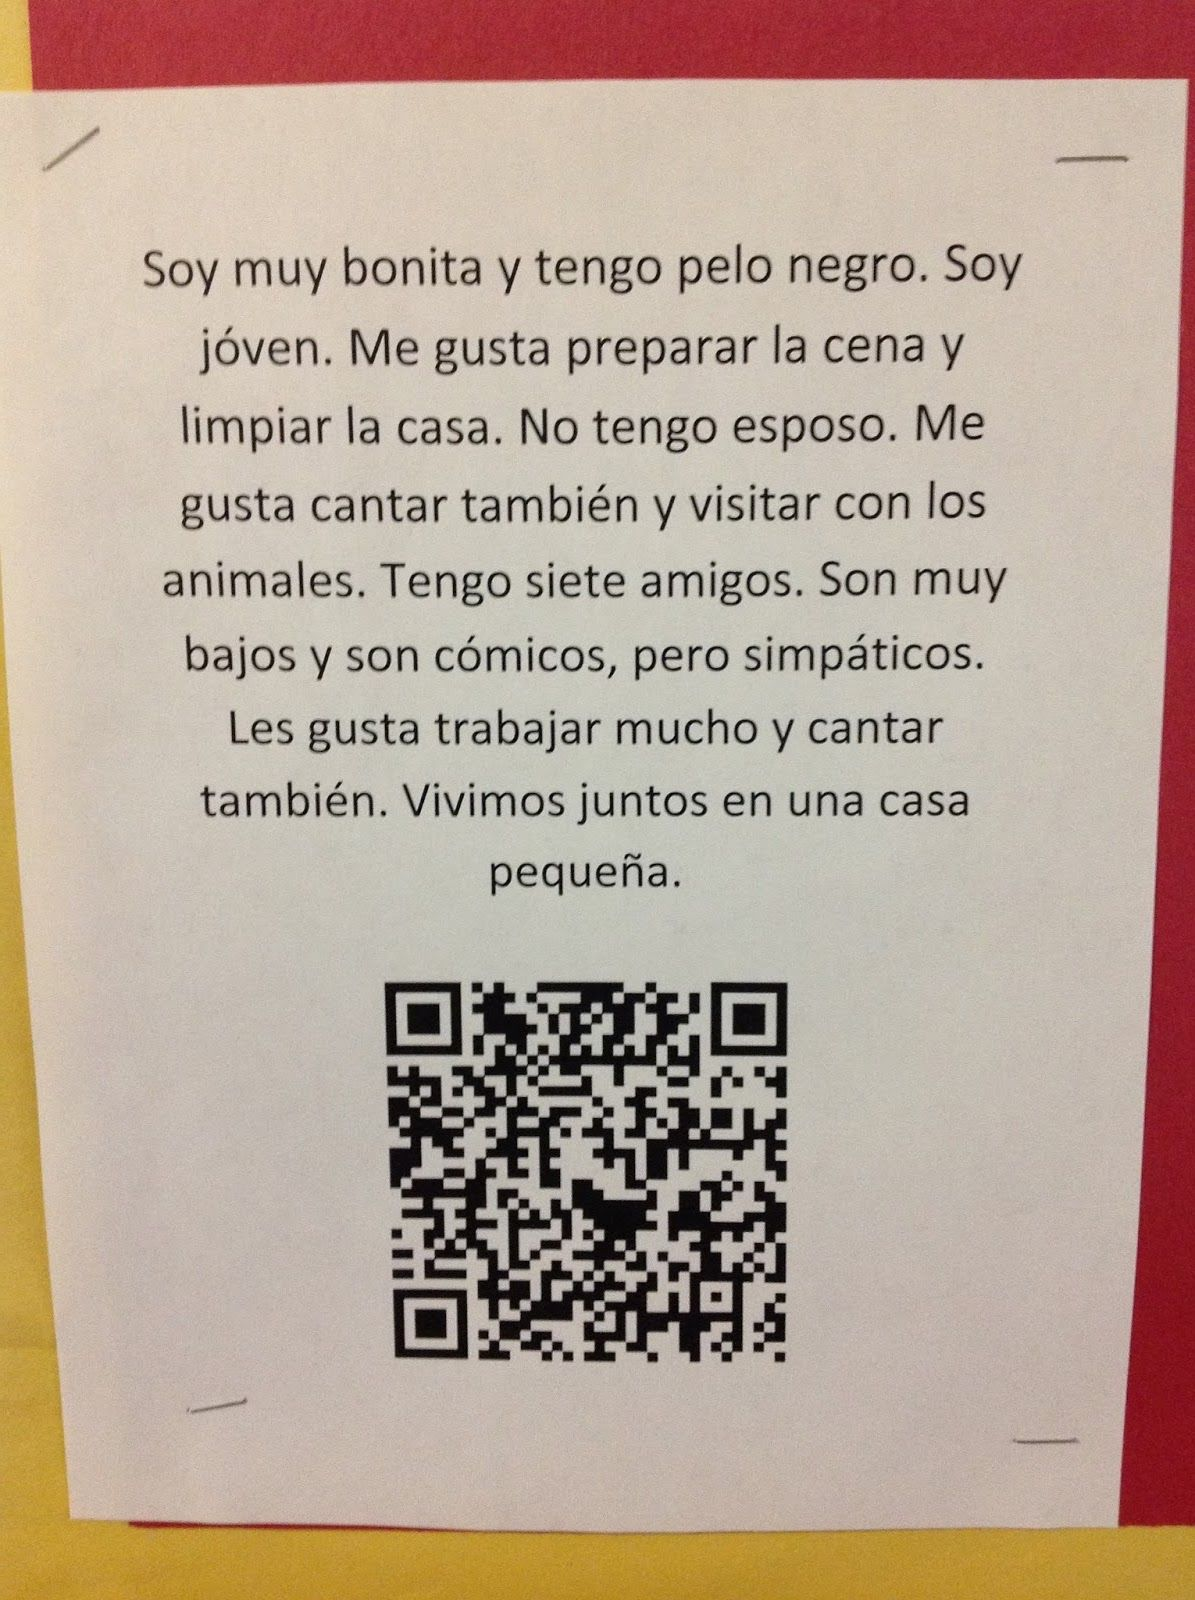 Qr Codes In Spanish Class With Images